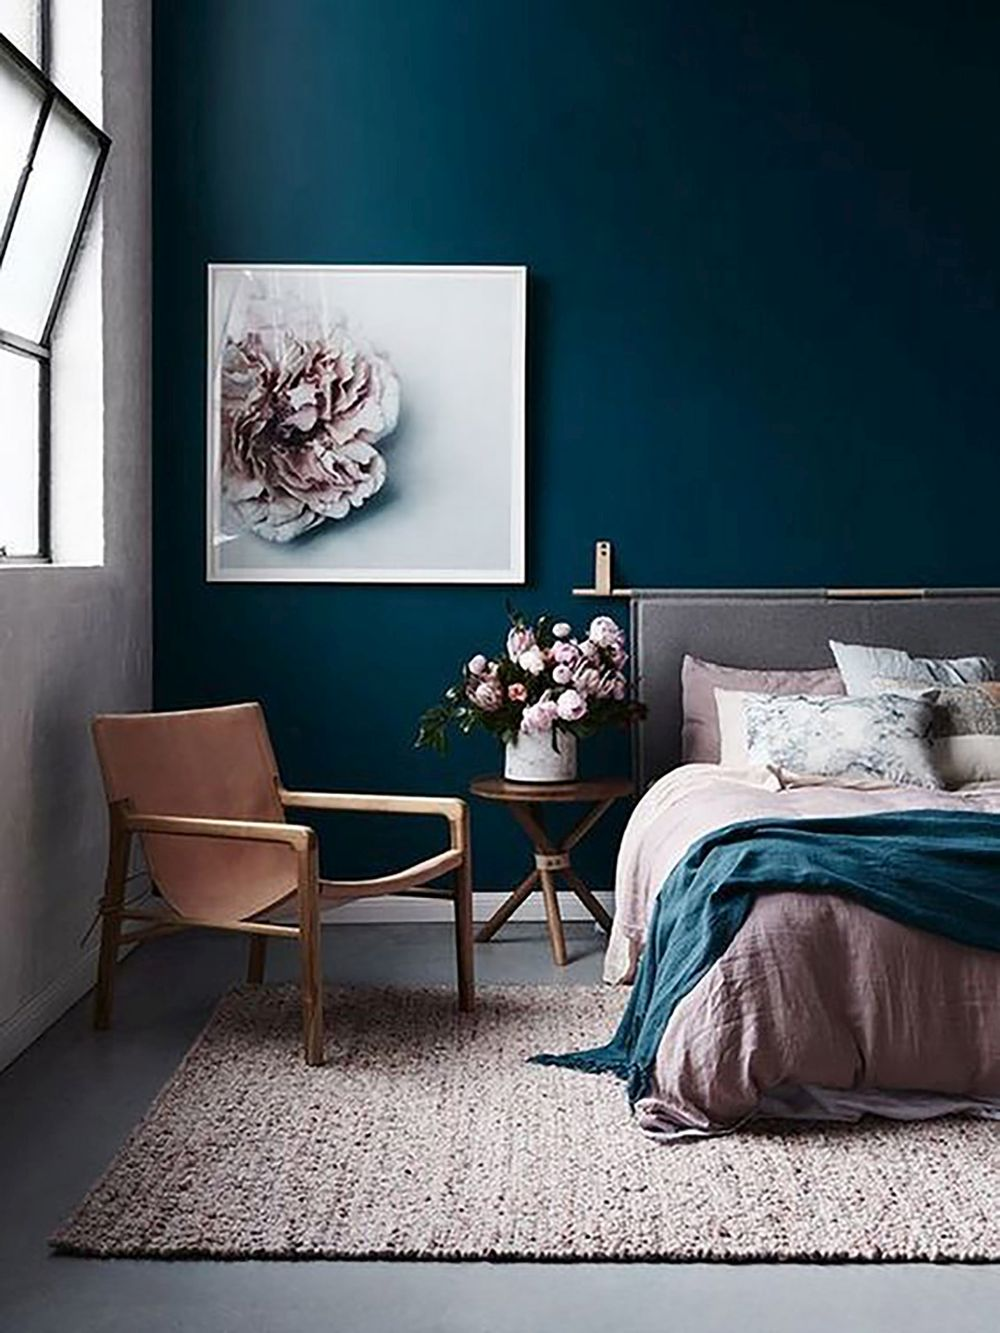 1572969148 534 20 beautiful blue rooms ideas to decorate with blue - 20 Beautiful Blue Rooms – Ideas To Decorate With Blue